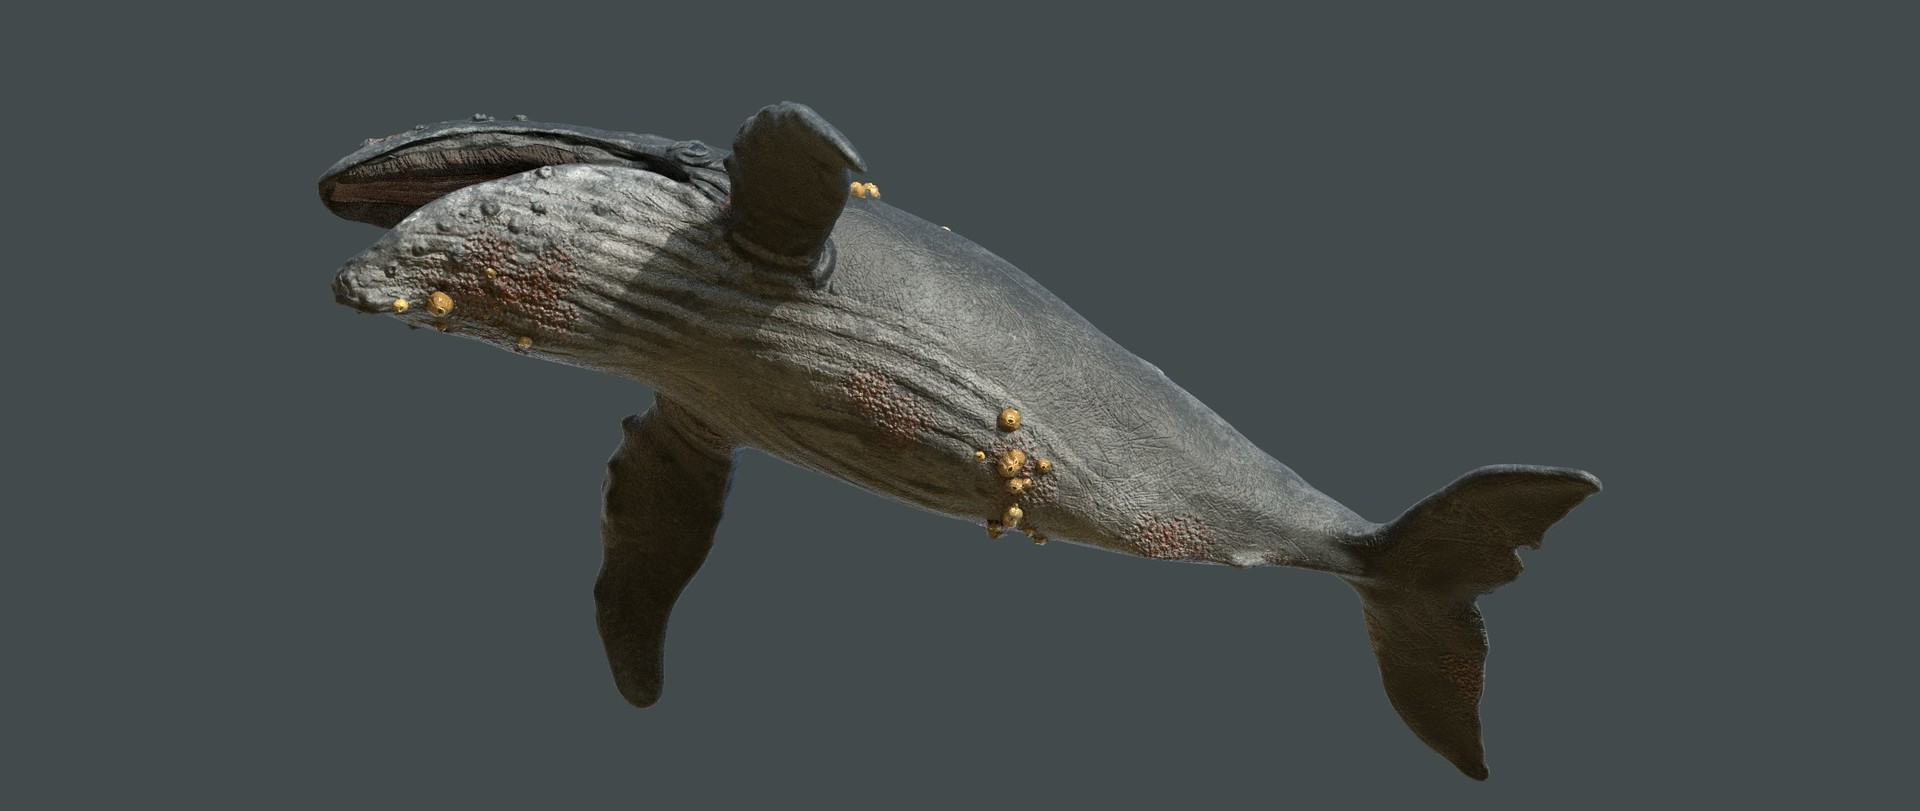 Laurie annis humpbackwhale haunting render25